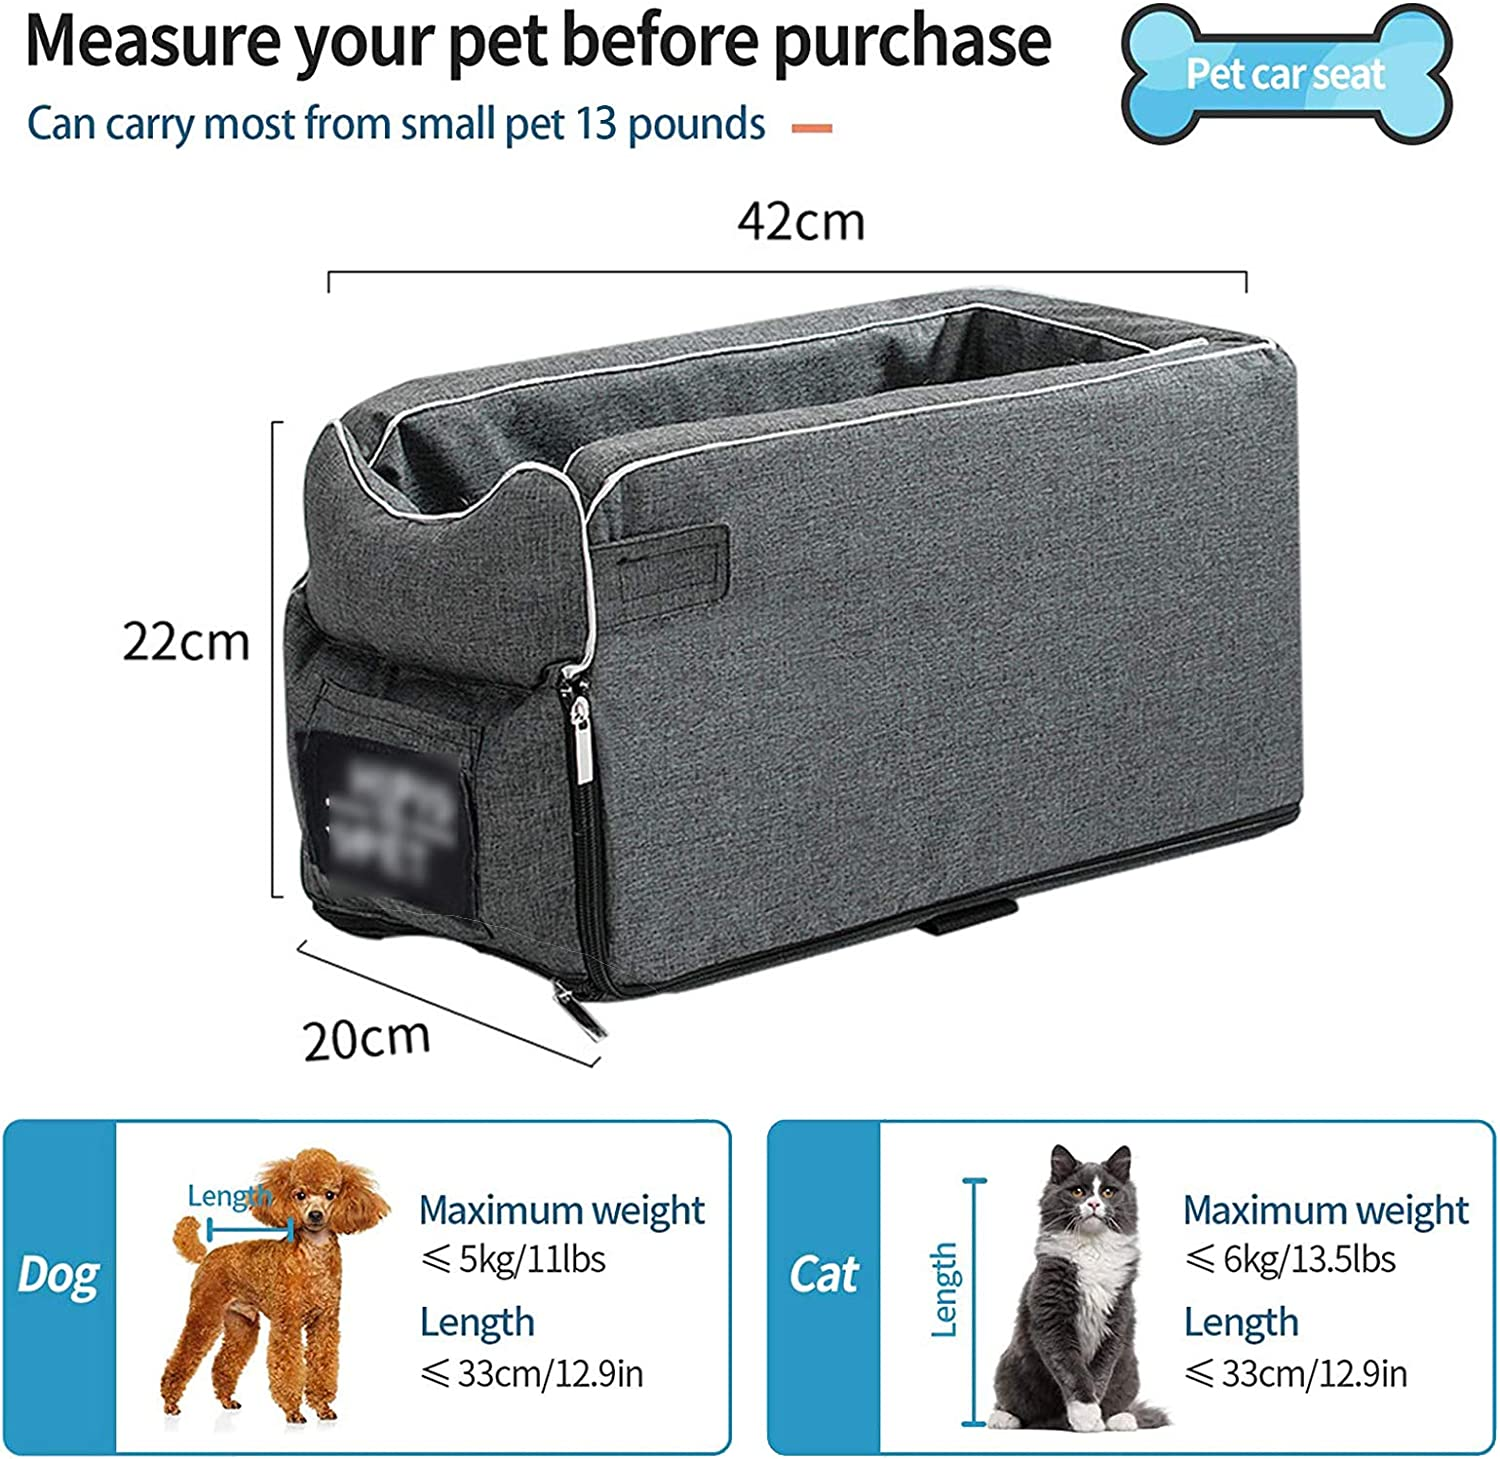 Small Dog Cat Booster Seat Puppy Travel Car Carrier Bed ON Car Armrest with Clip-On Safety Leash /& Removable Washable Cover,Dog Car Safety Seats for Cat And Small Dog Up To 13 Lbs